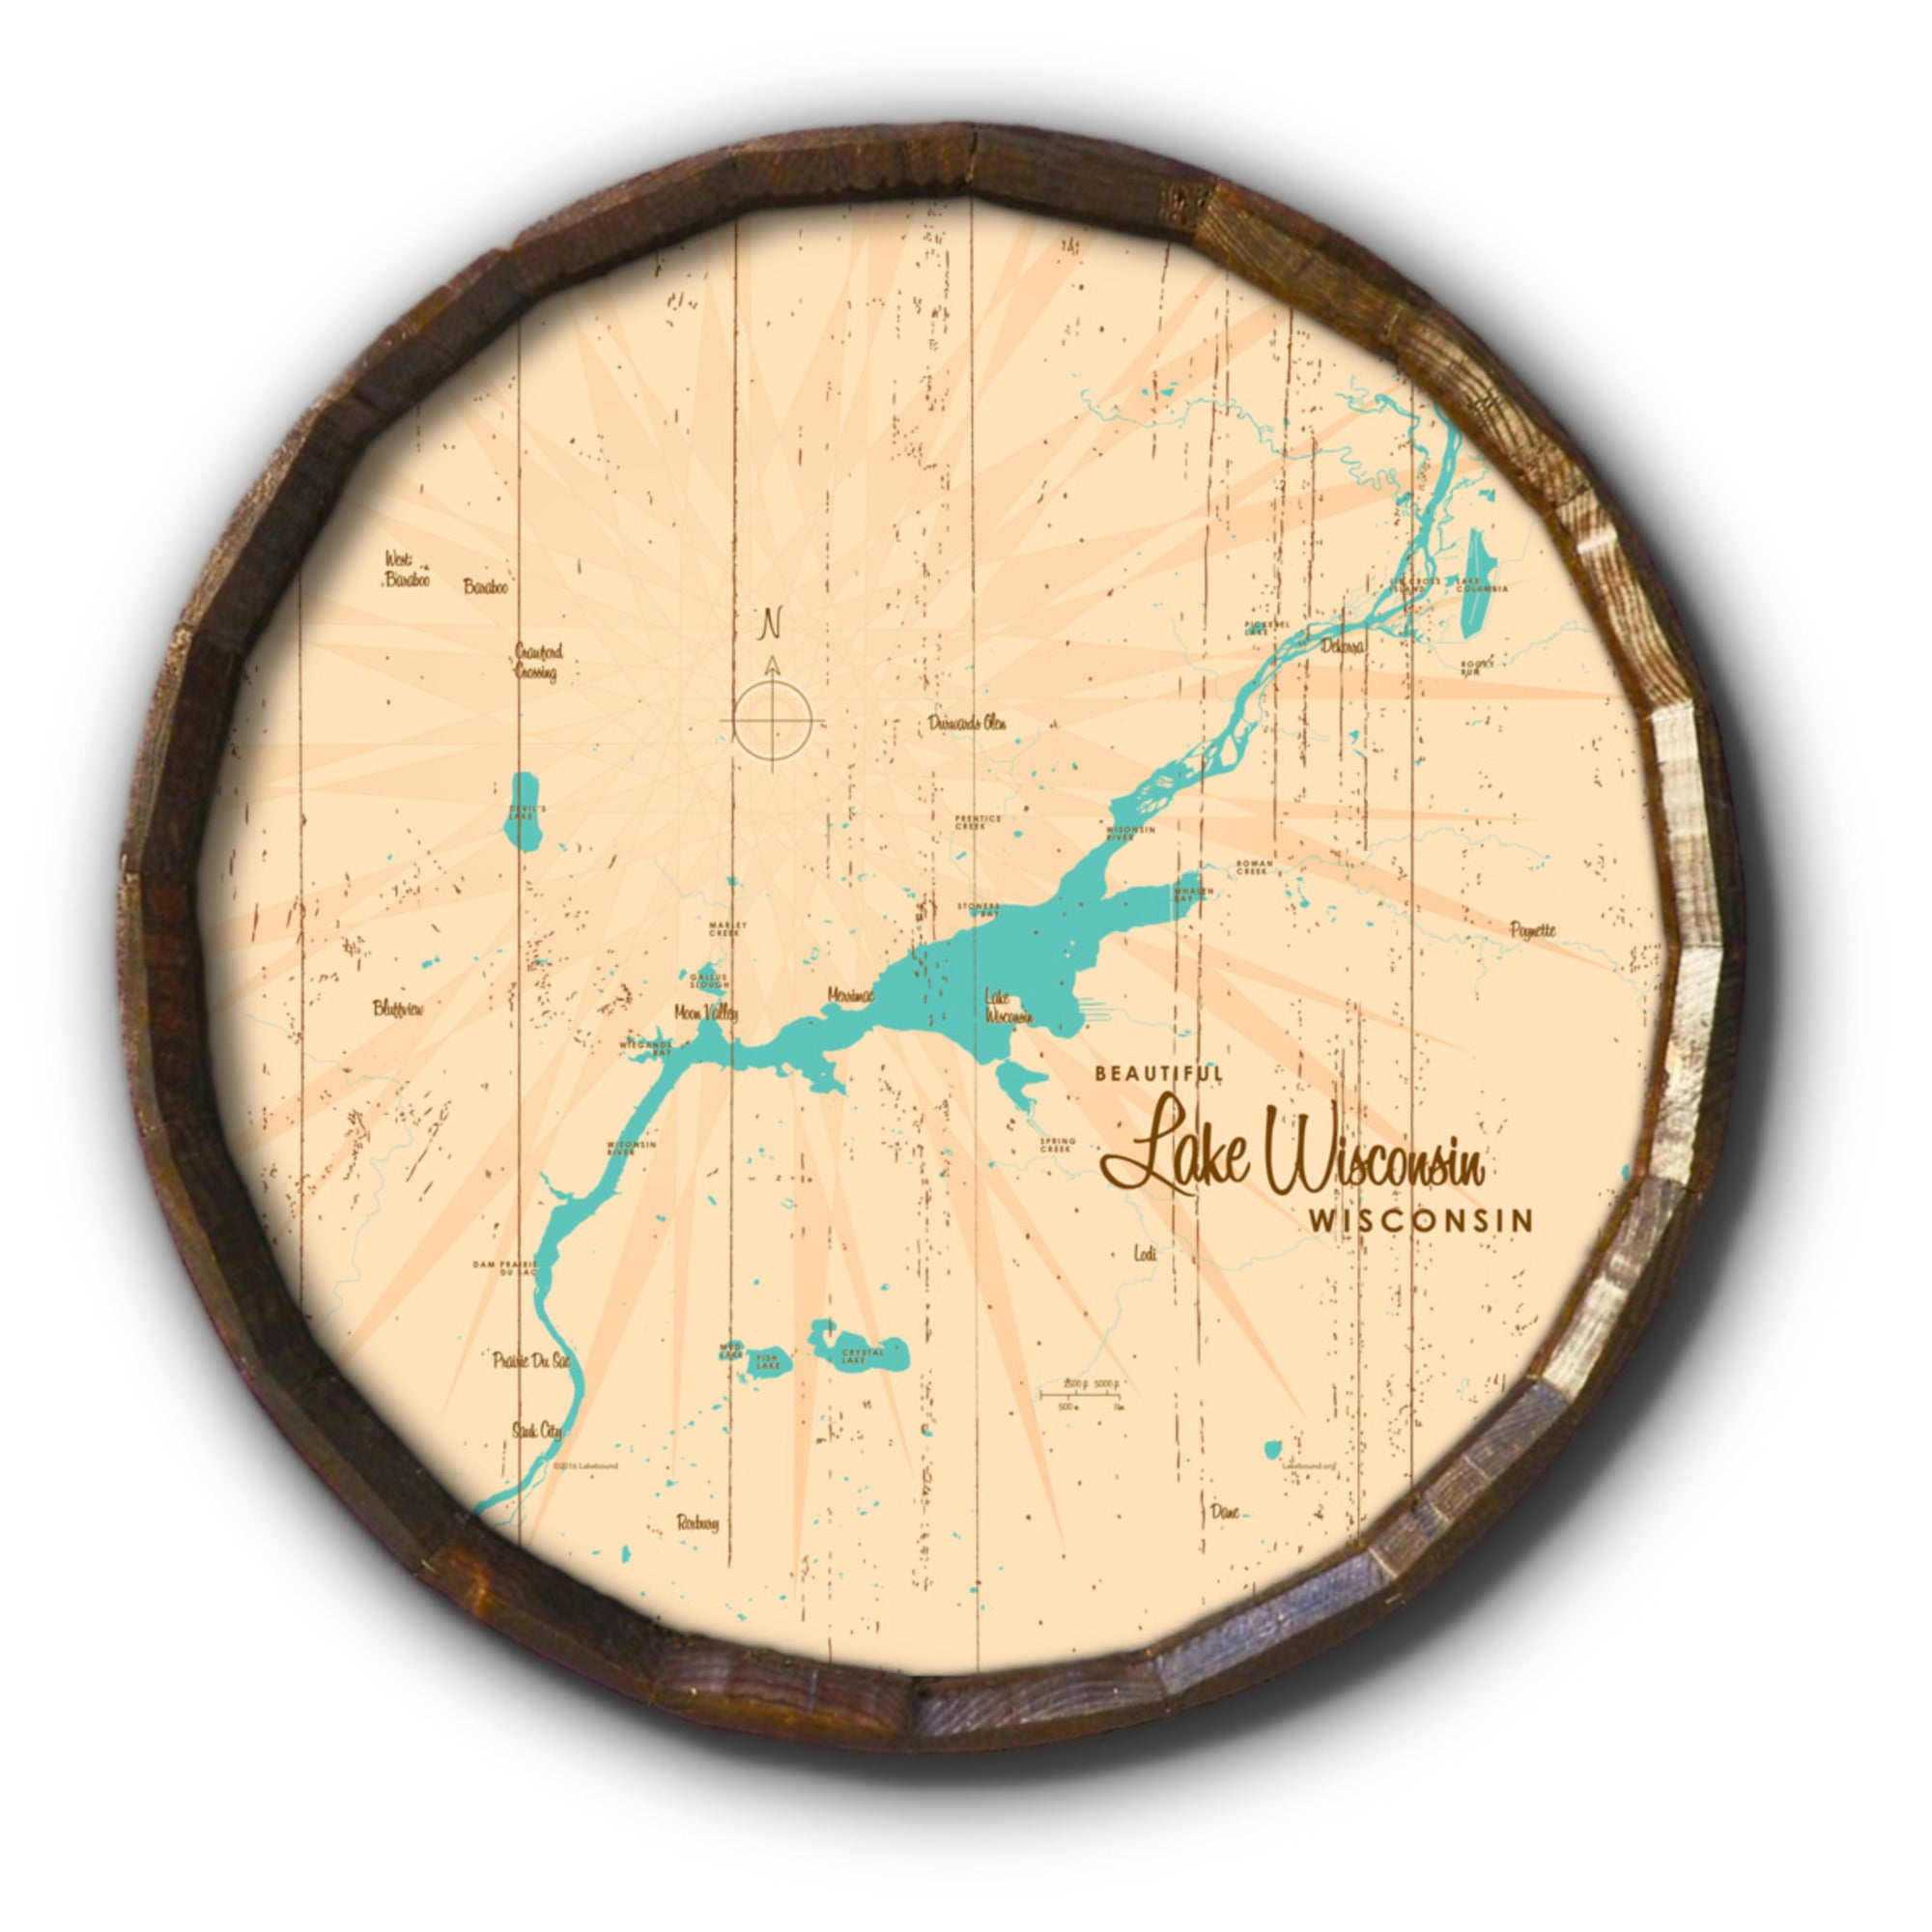 Lake Wisconsin Wisconsin, Rustic Barrel End Map Art